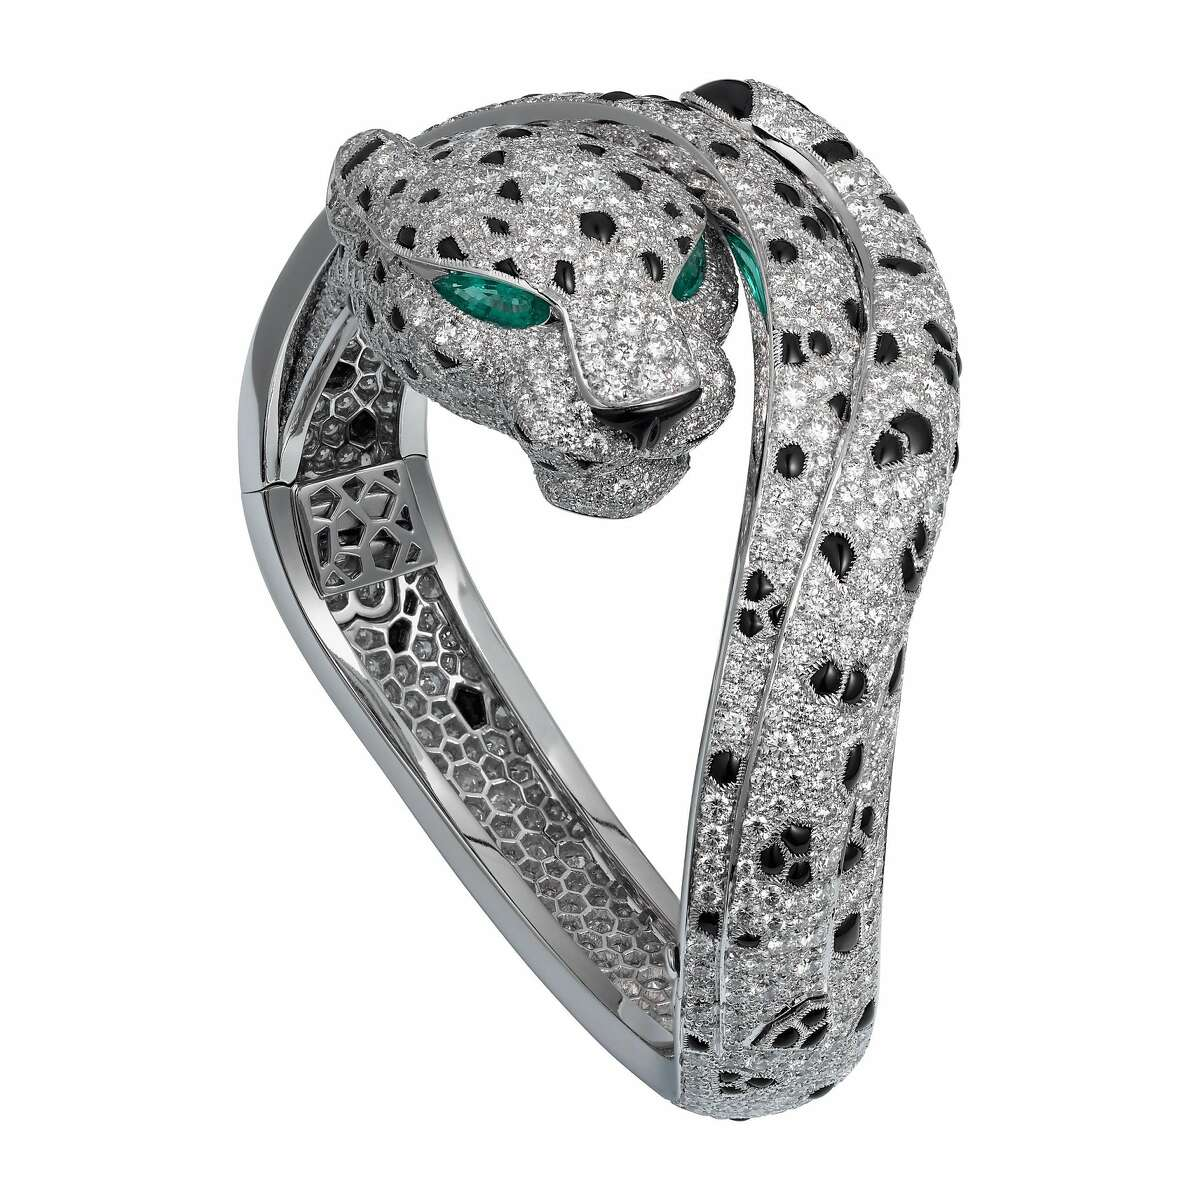 Items in Cartier's High Jewelry collection include one-of-a-kind creations such as the�Panth�re de Cartier High Jewelry bracelet, platinum, emeralds, onyx, diamonds; price upon request.